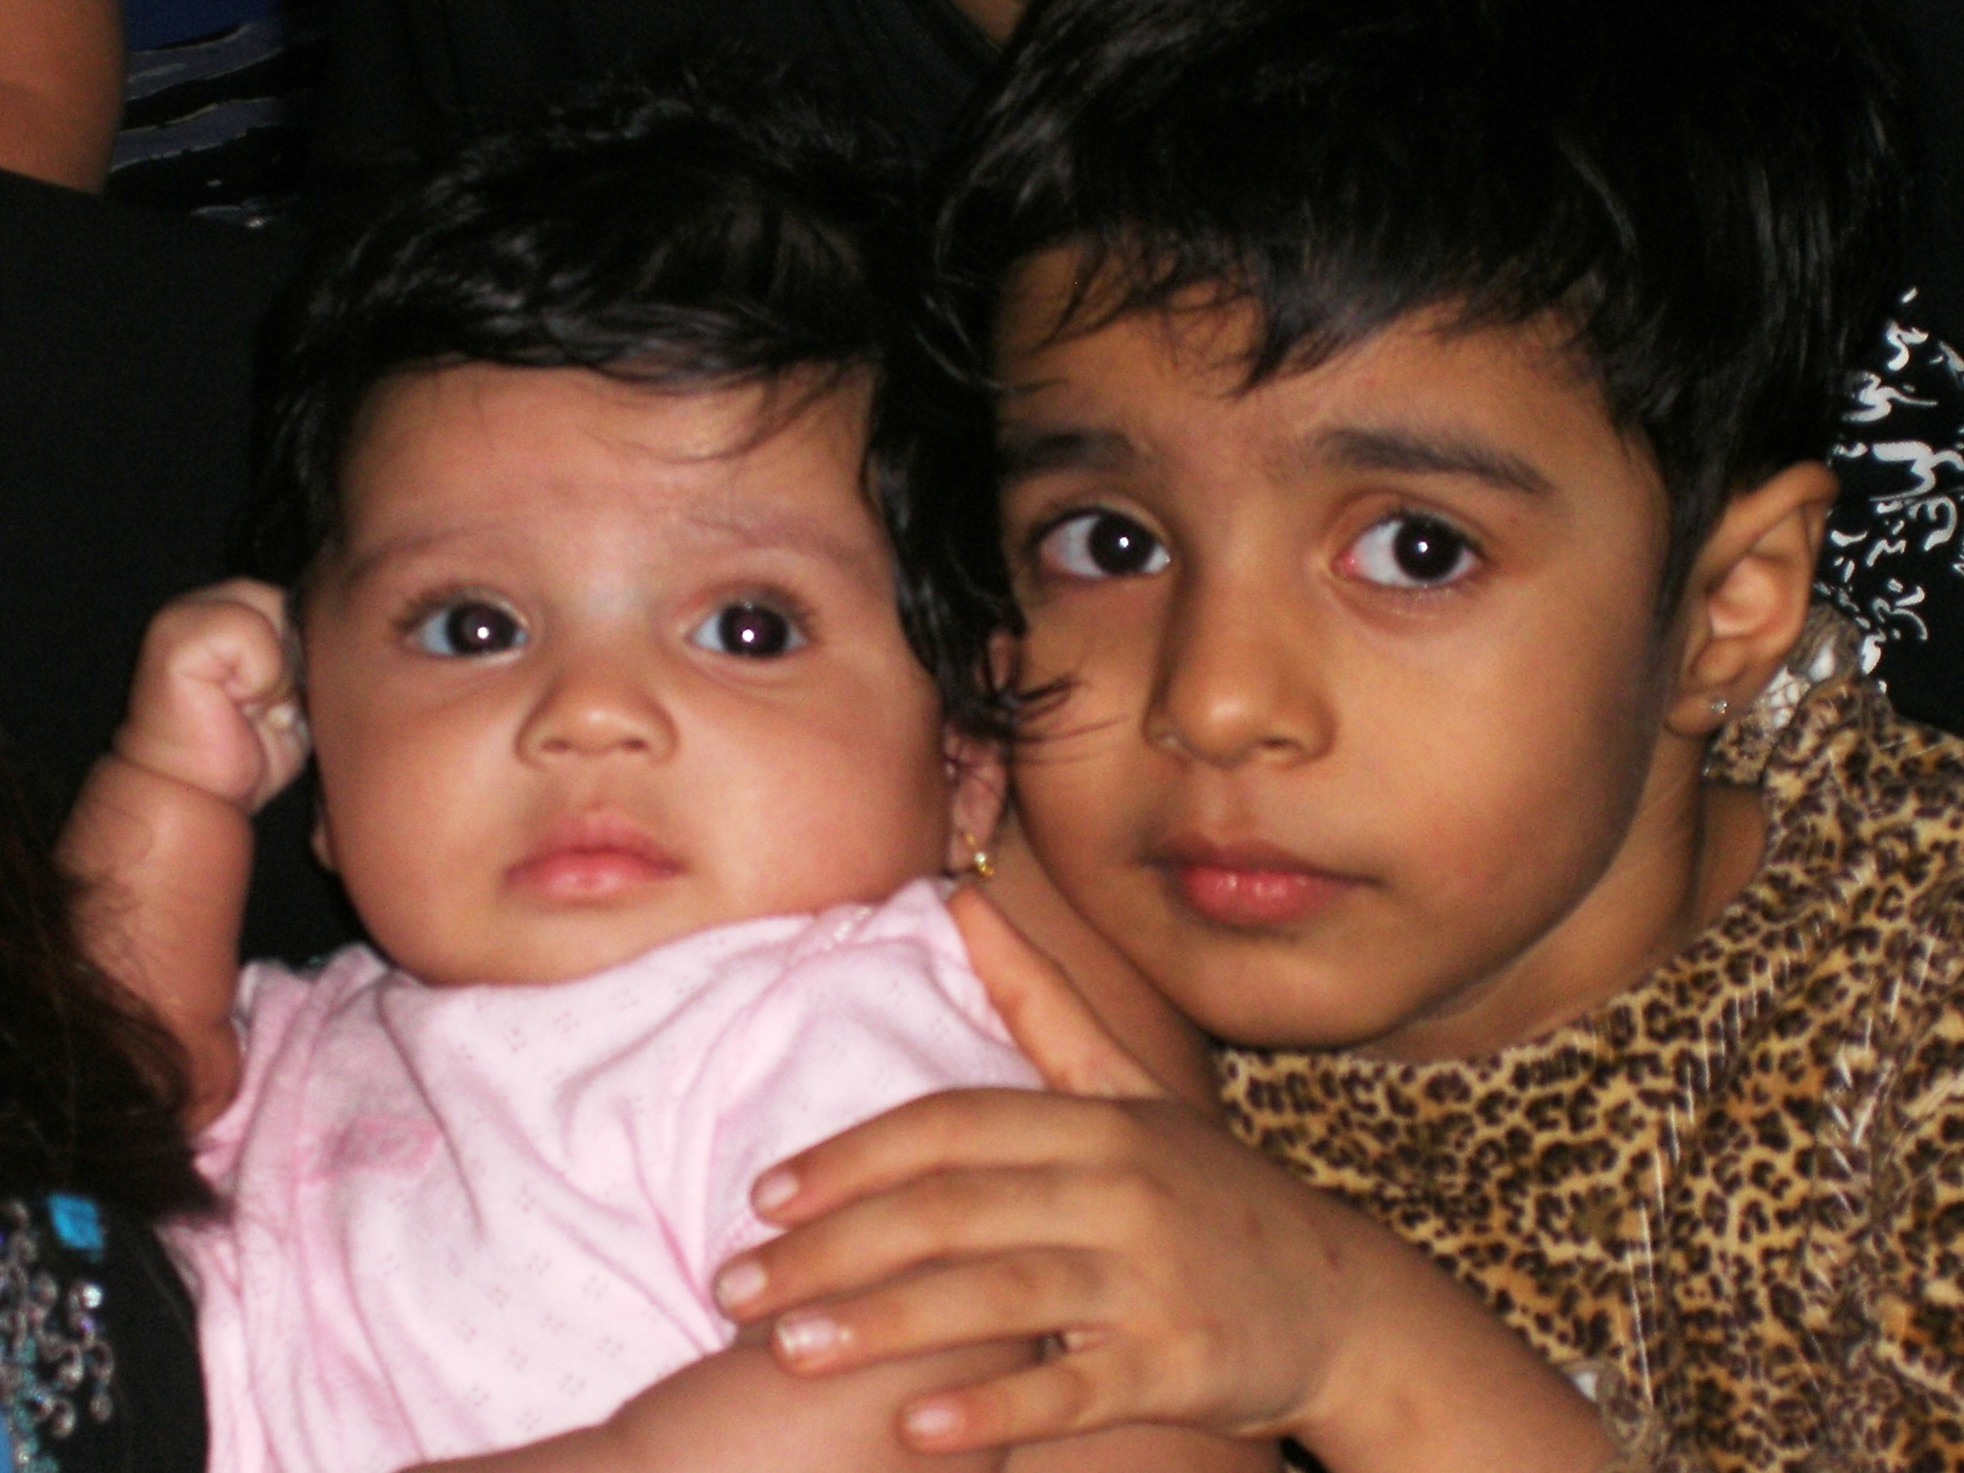 cousins in arms.jpg - Me and Bebo, my favorite cousin...